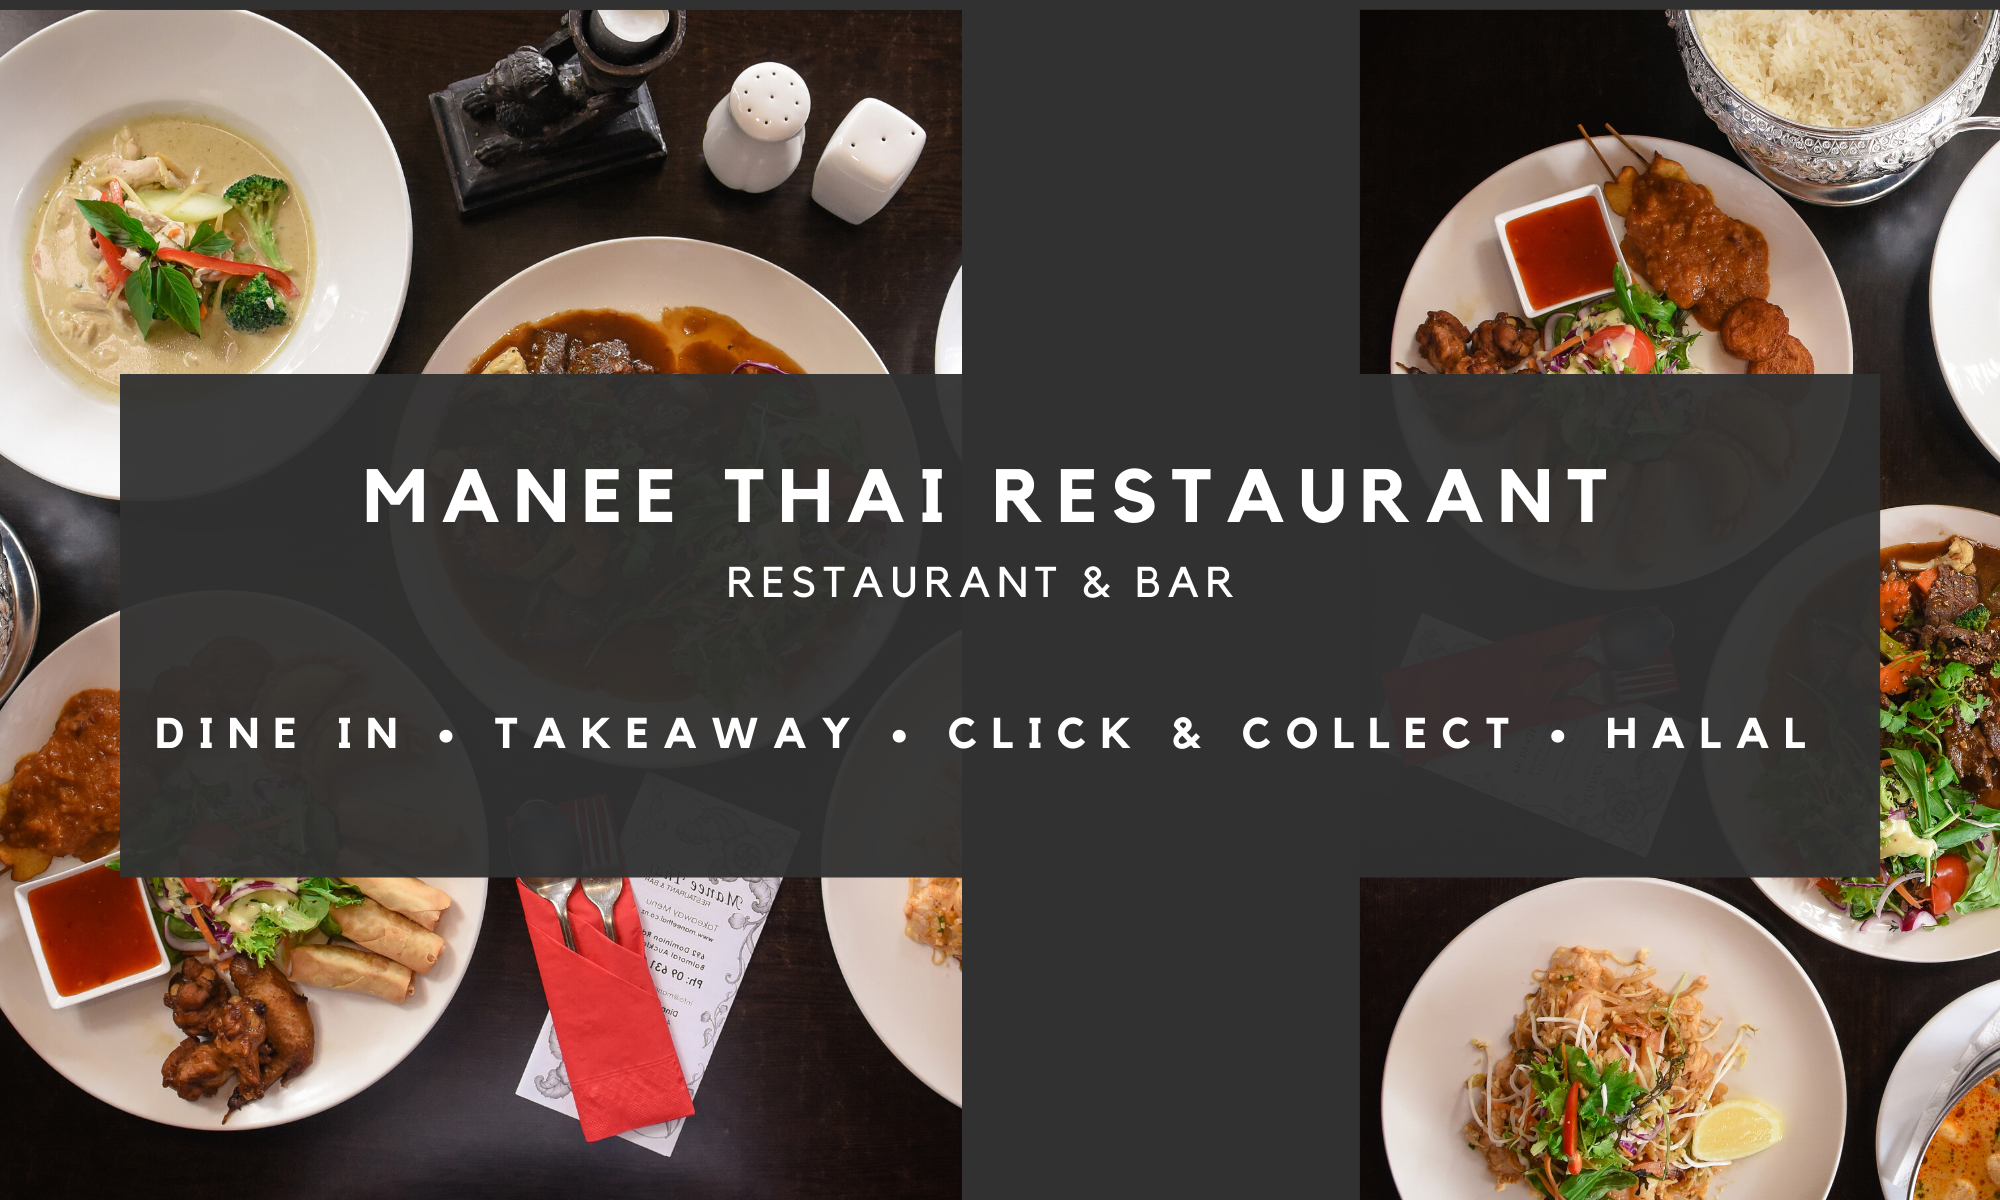 Manee Thai Restaurant